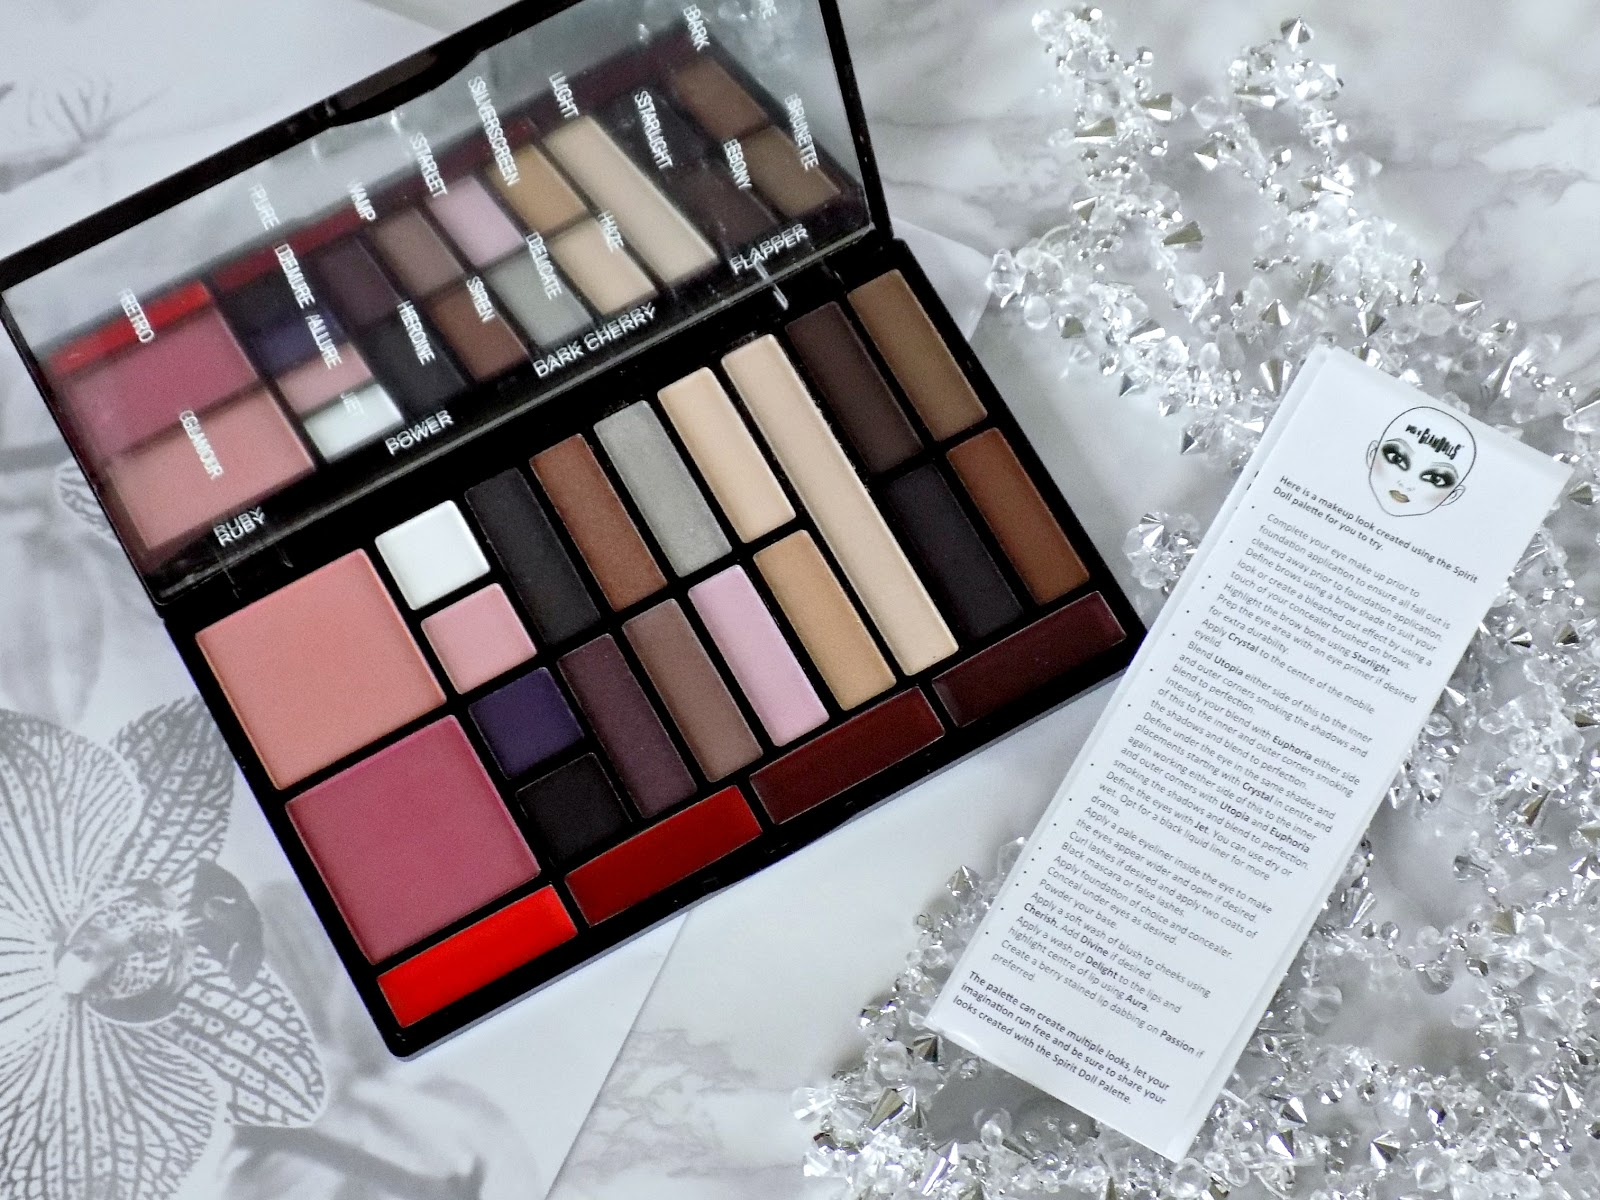 Freedom Makeup & House of Glamdolls 'Vintage Doll Look' palette